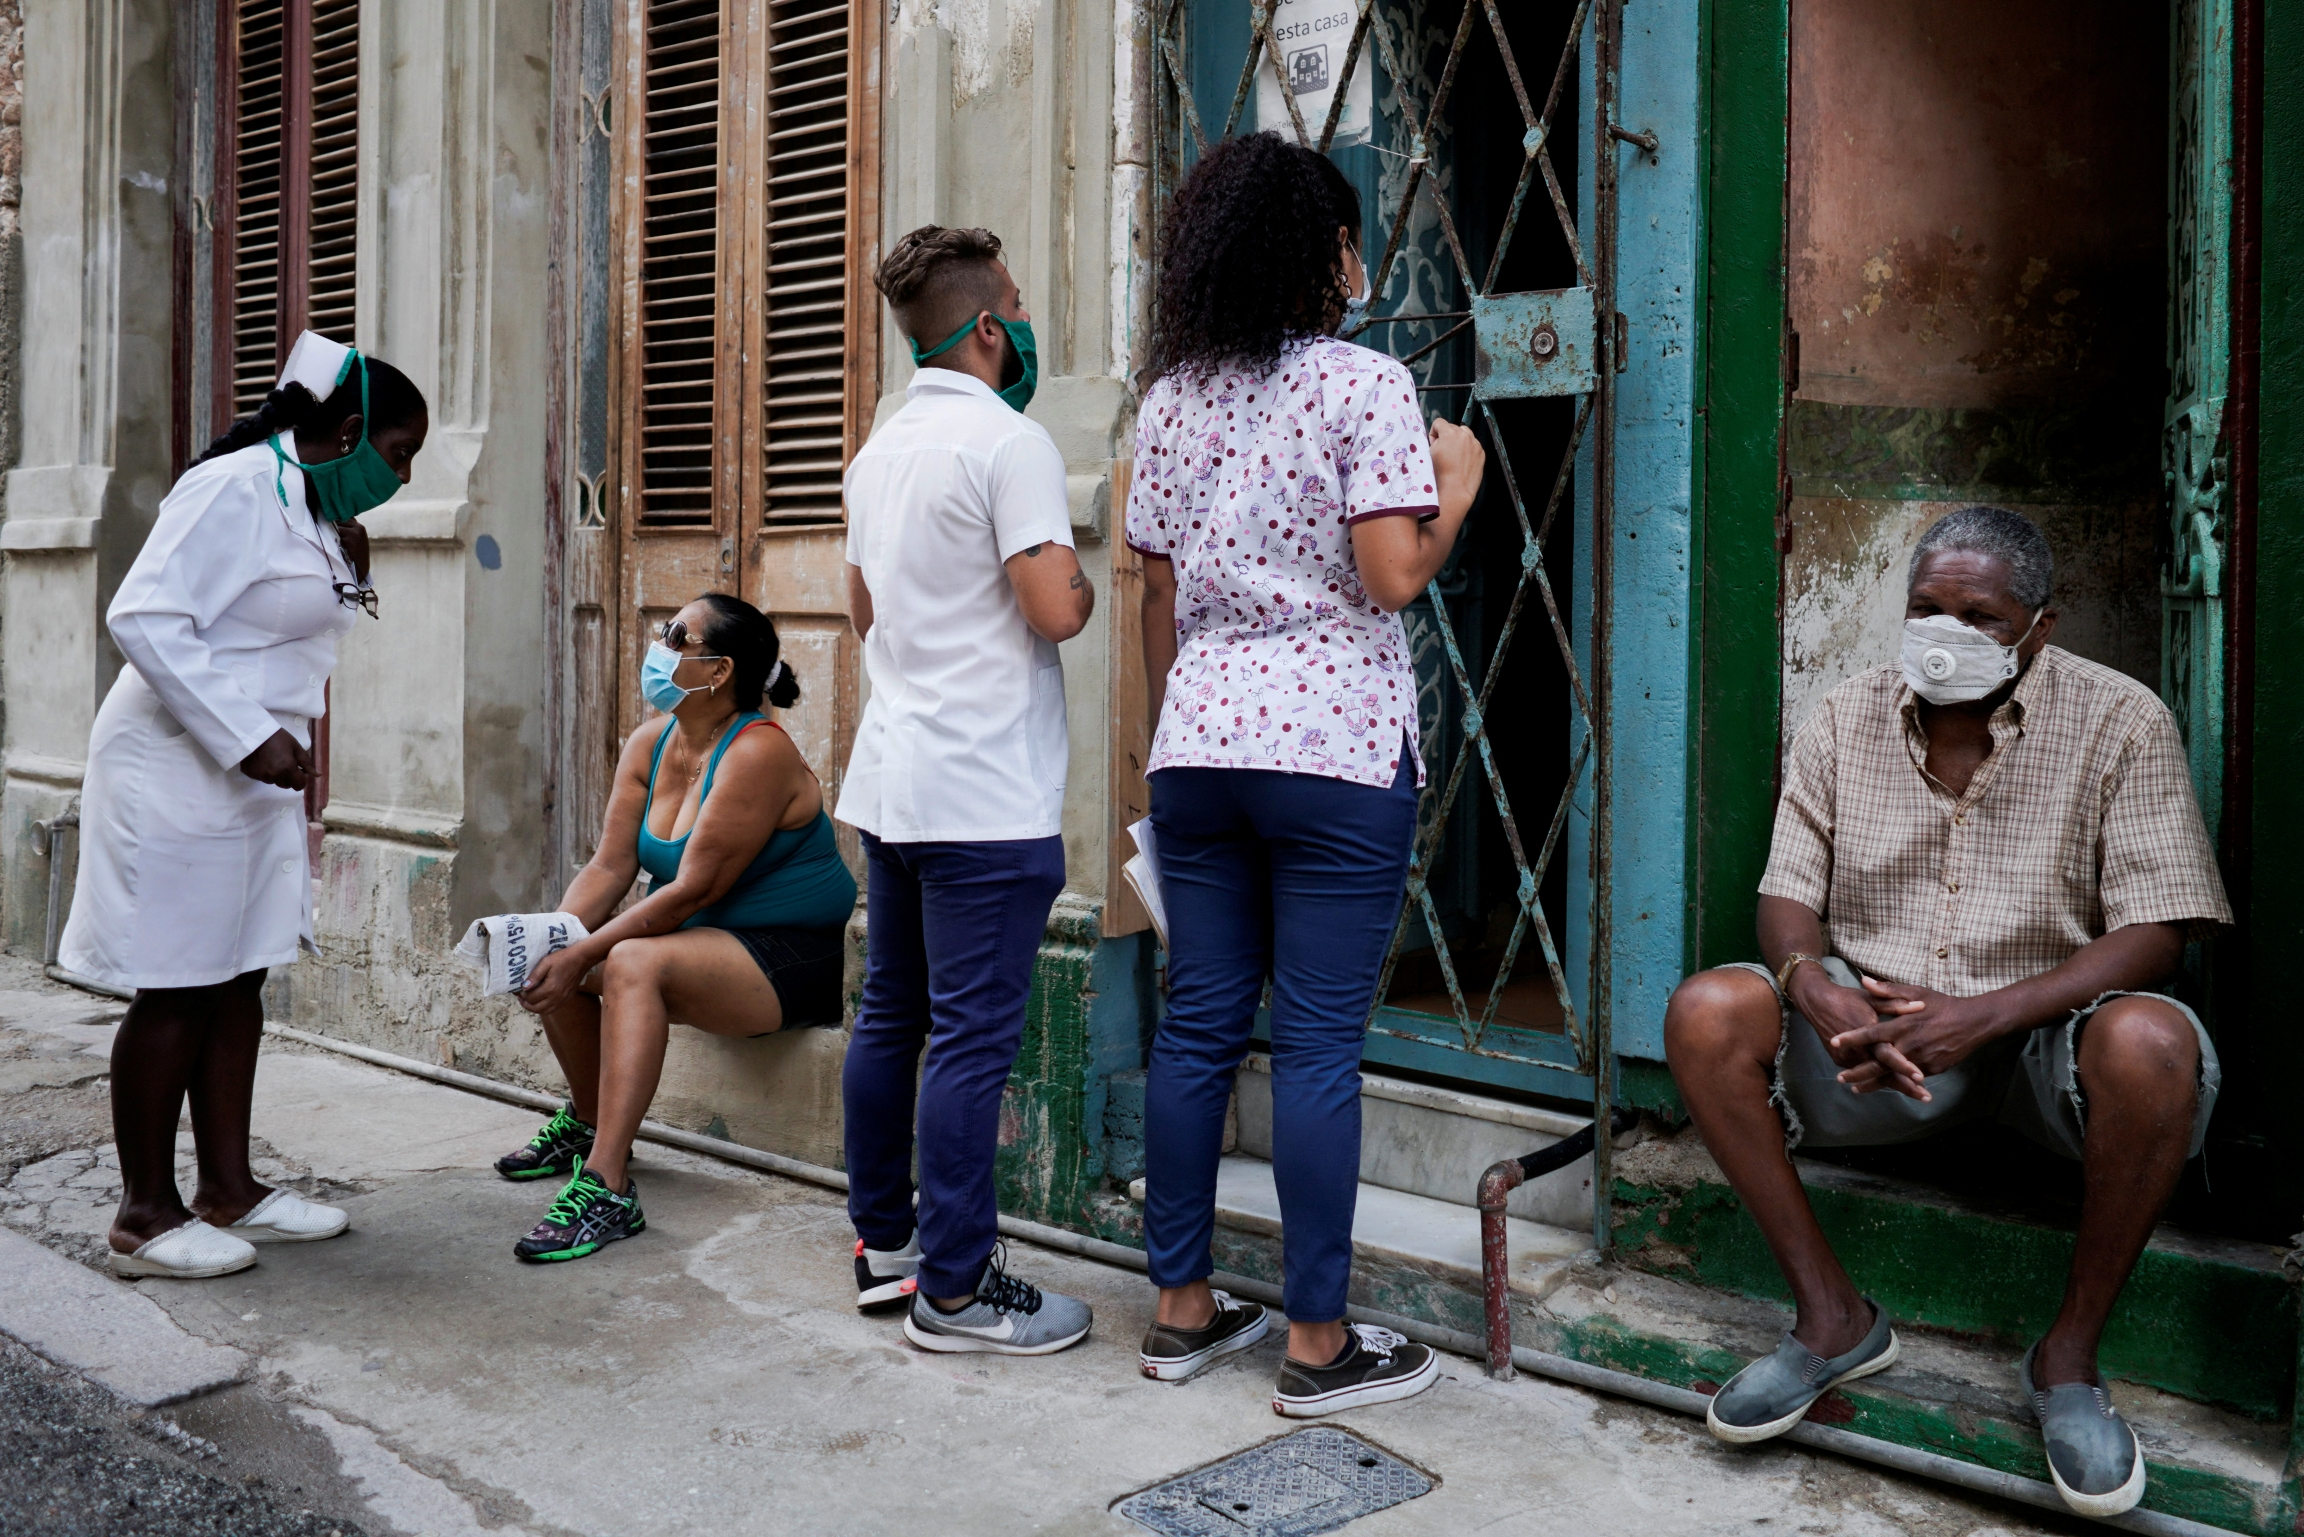 Medical students check door-to-door for people with symptoms amid concerns about the spread of the coronavirus disease (COVID-19), in downtown Havana, Cuba, May 11, 2020.